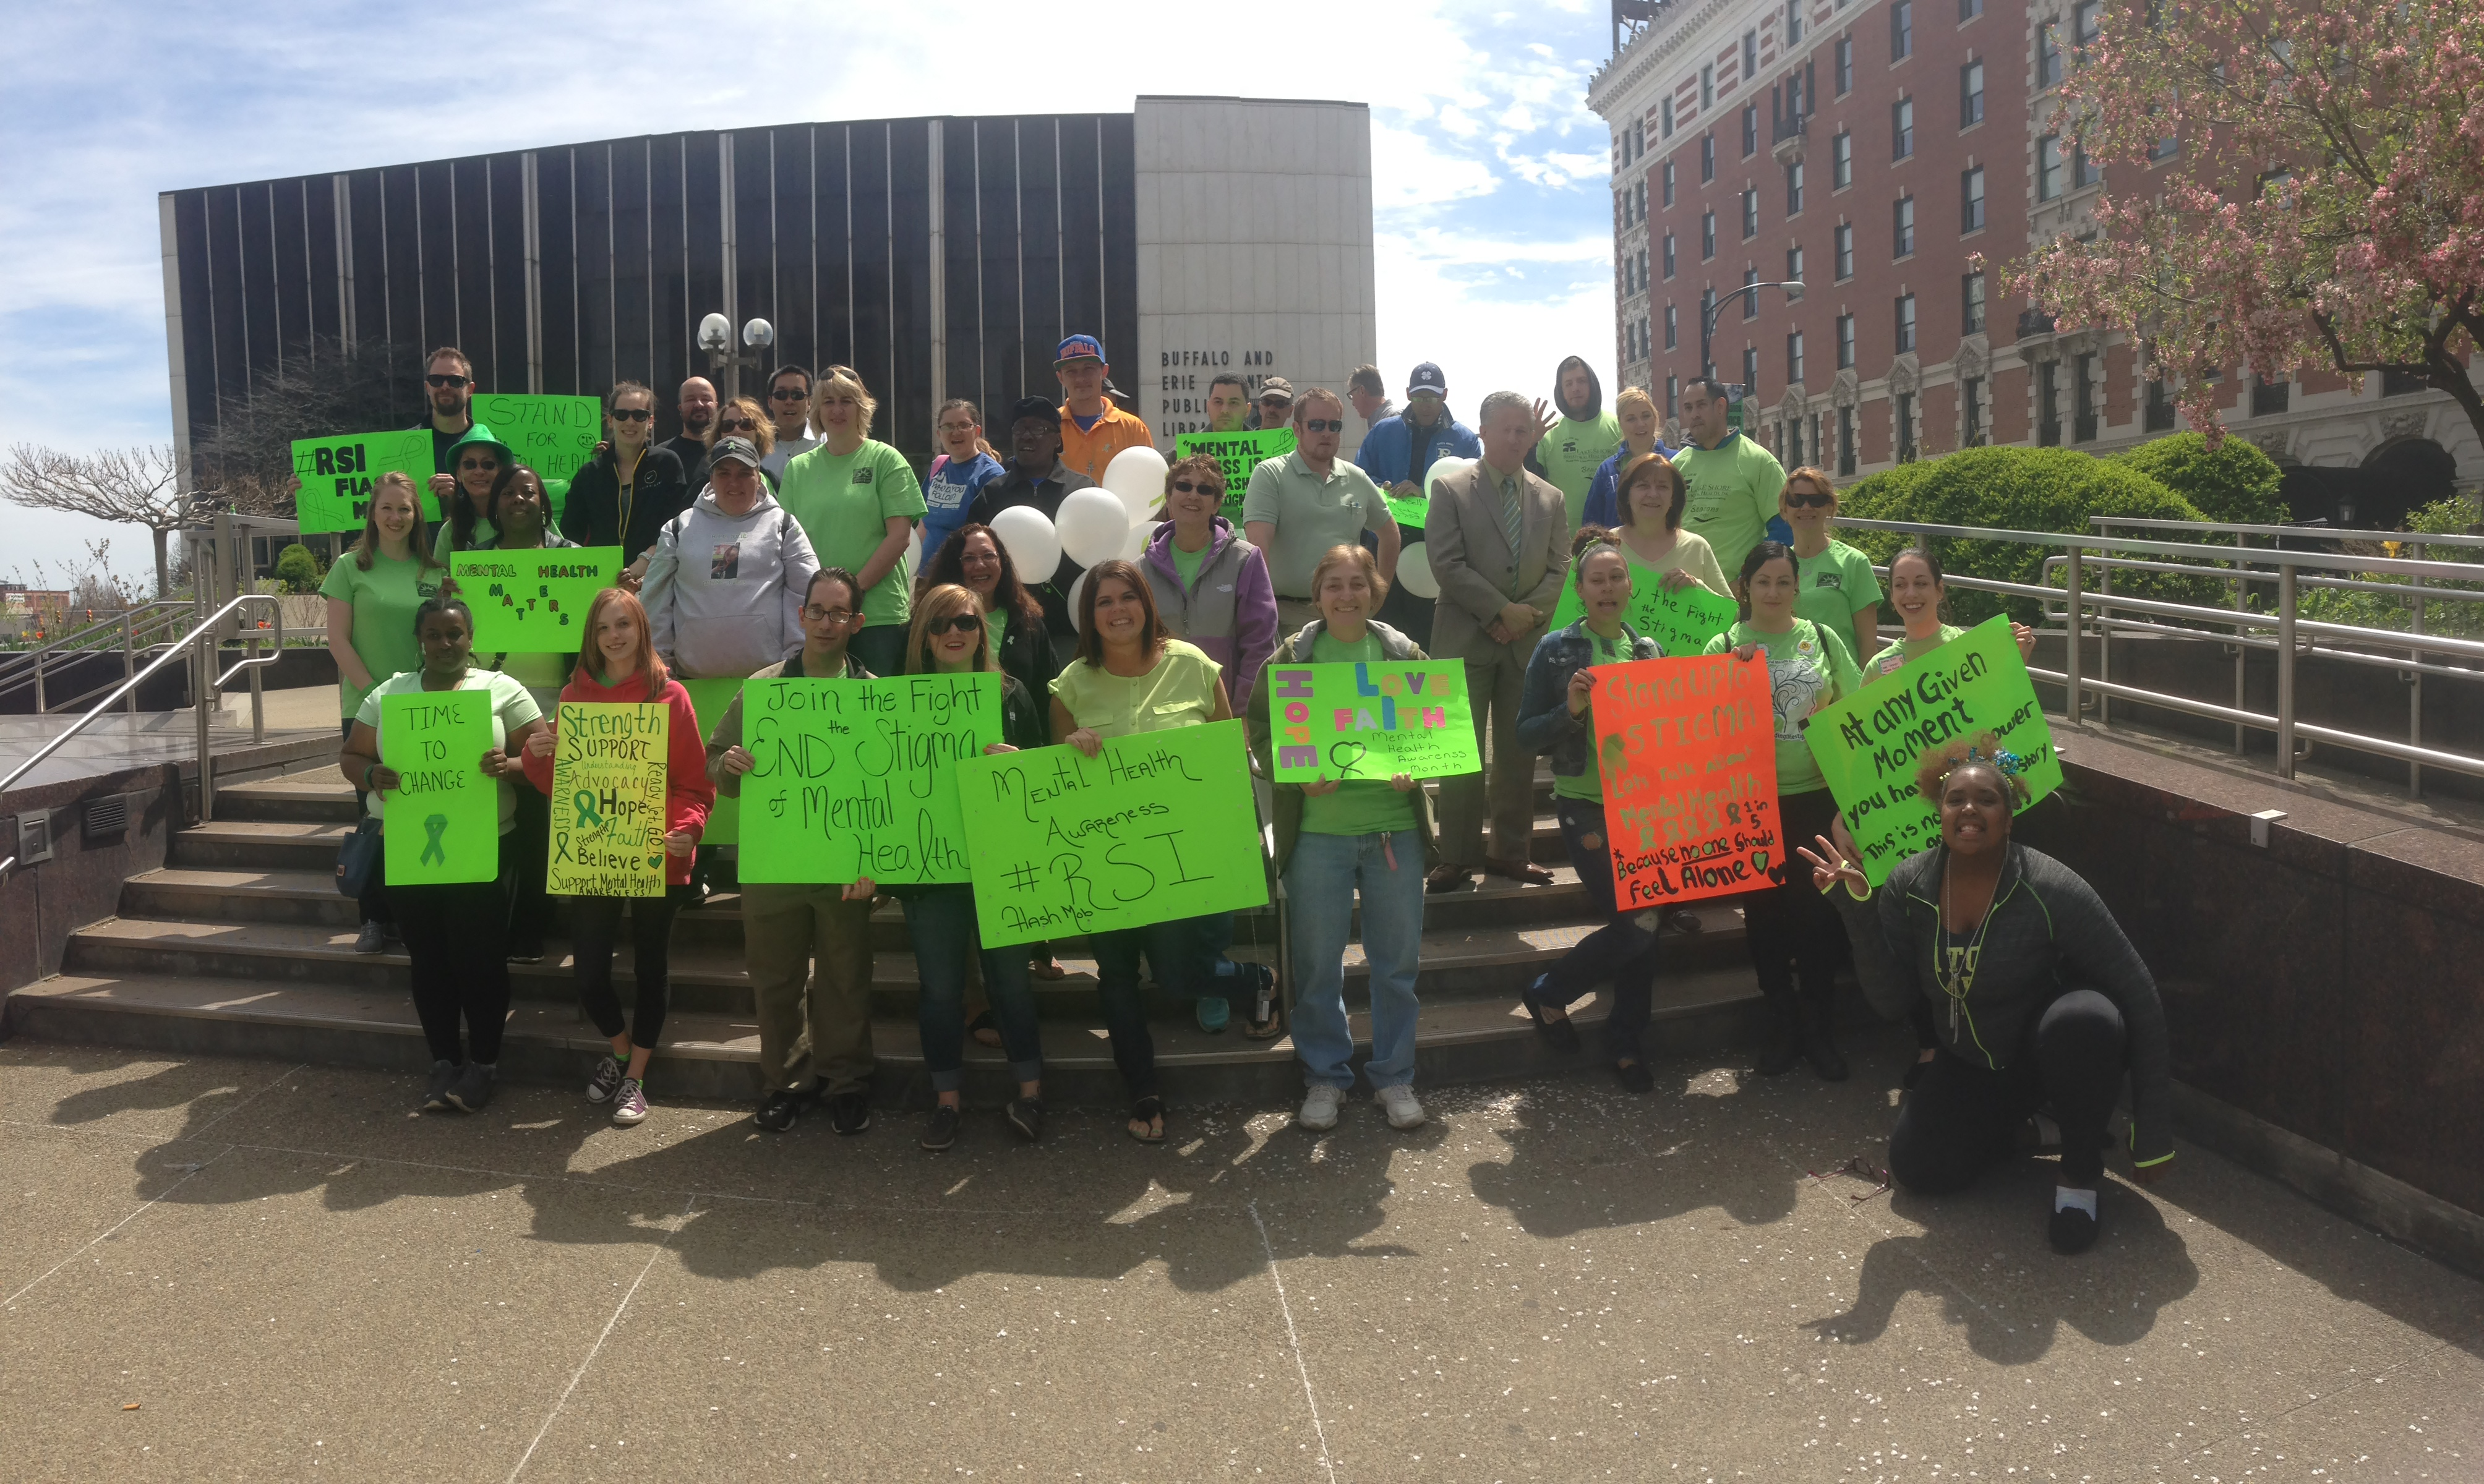 The annual Mental Health Awareness Informational Fair and Flash Mob is designed to help raise awareness about mental illness in WNY, and provide resources for families touched by it, says Michelle Scheib, center, with the 'Mental Health Awareness' sign. This year's event will take place Thursday at the Central Library.